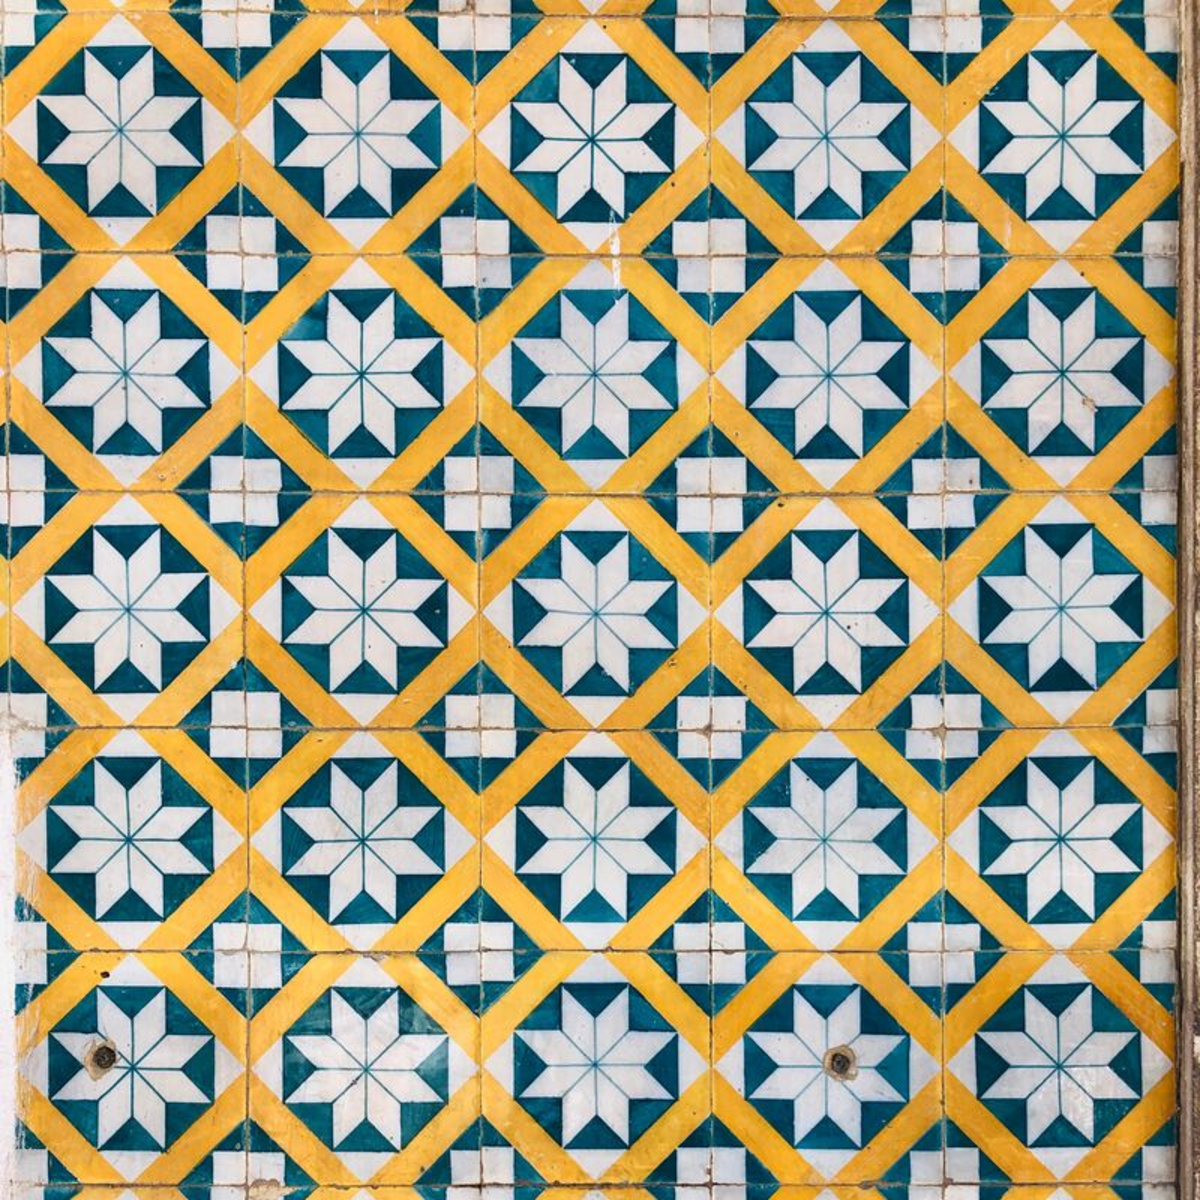 This colorful pattern could definitely be used to liven up a dull or unstimulating room.